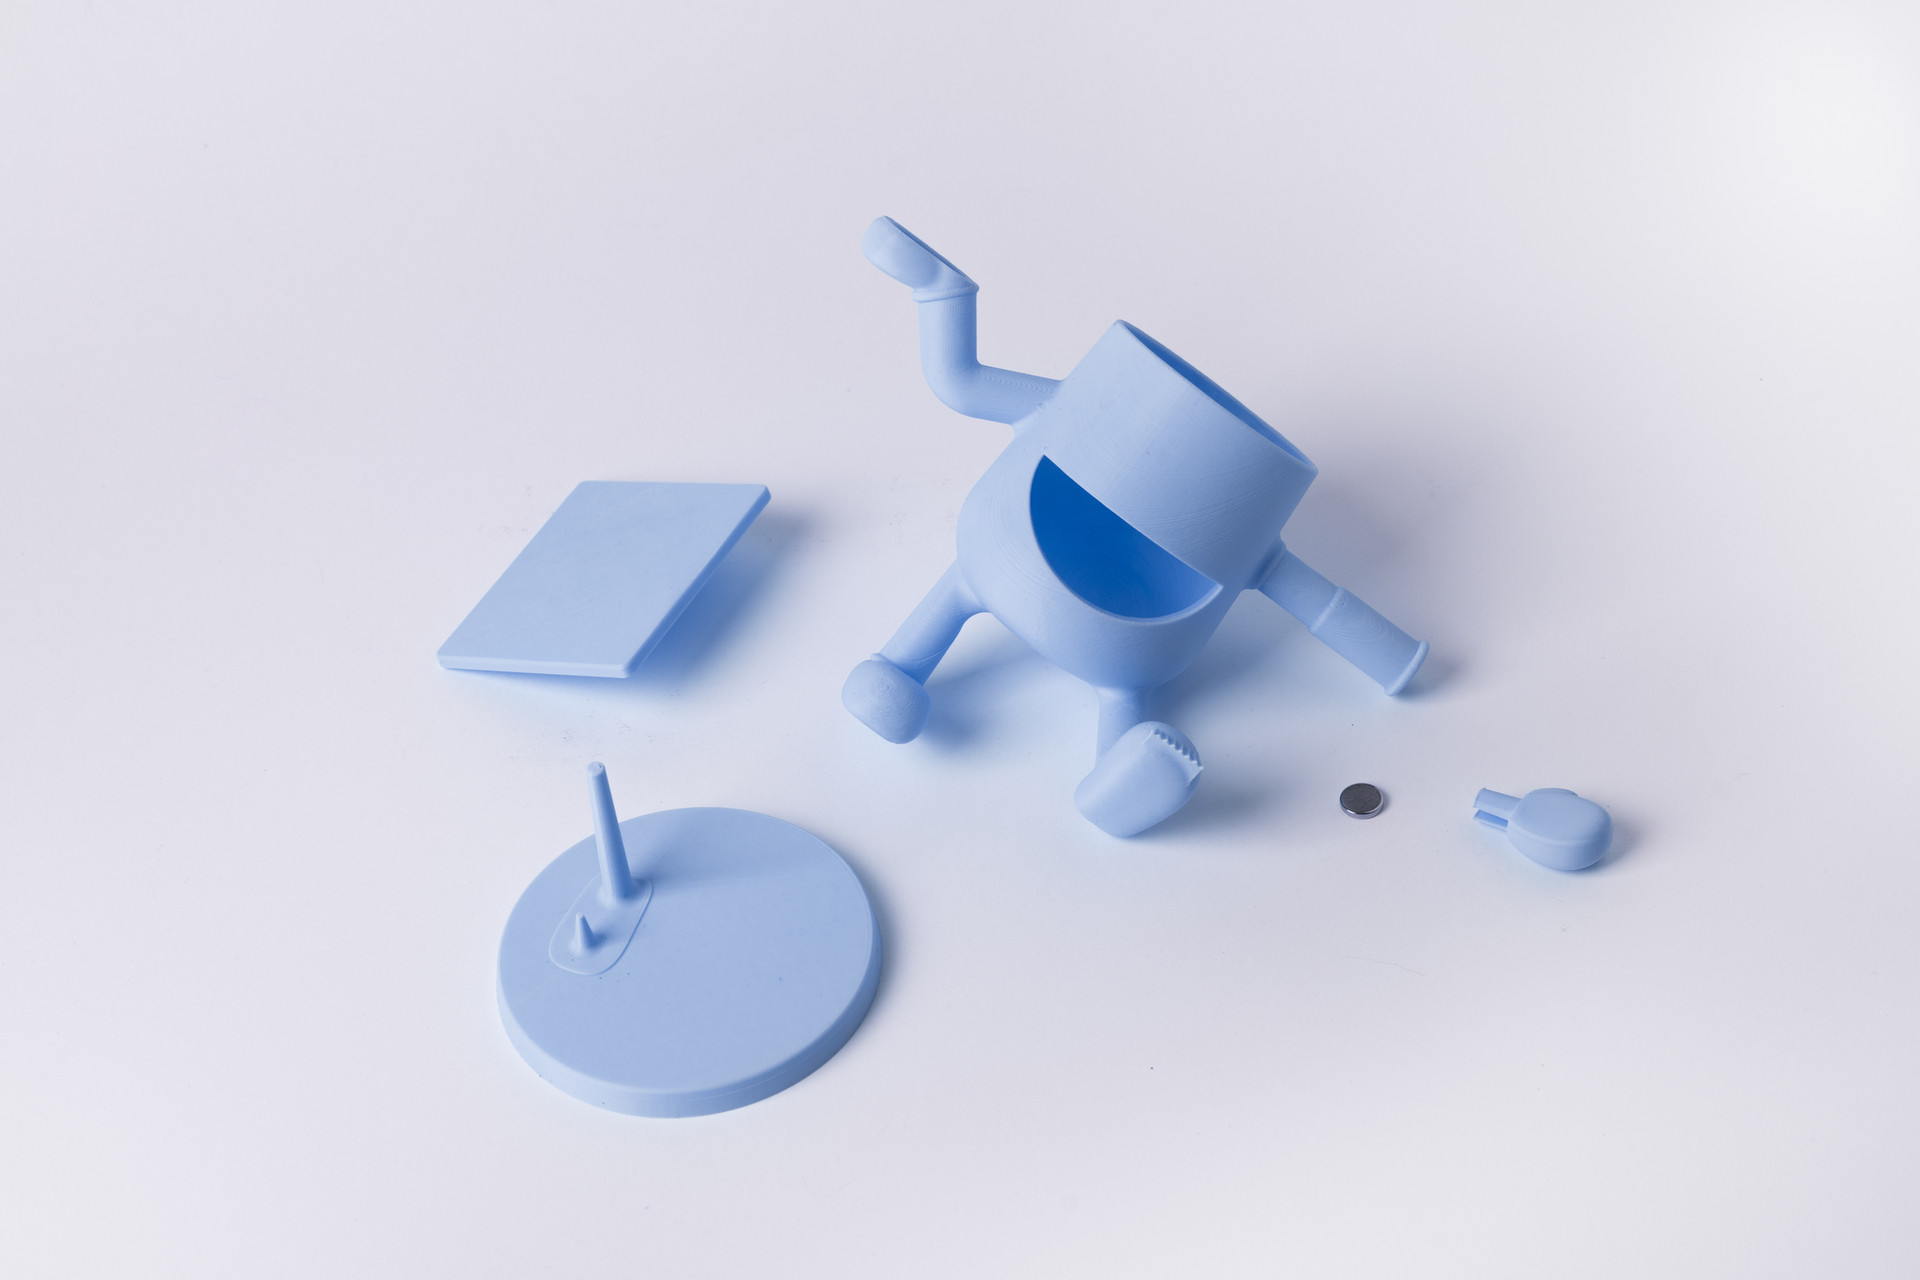 a disassembled desk buddy showing distinct parts which snap together. this makes molding and interchanging parts easier, but also allows the product to be fully disassembled at end of life